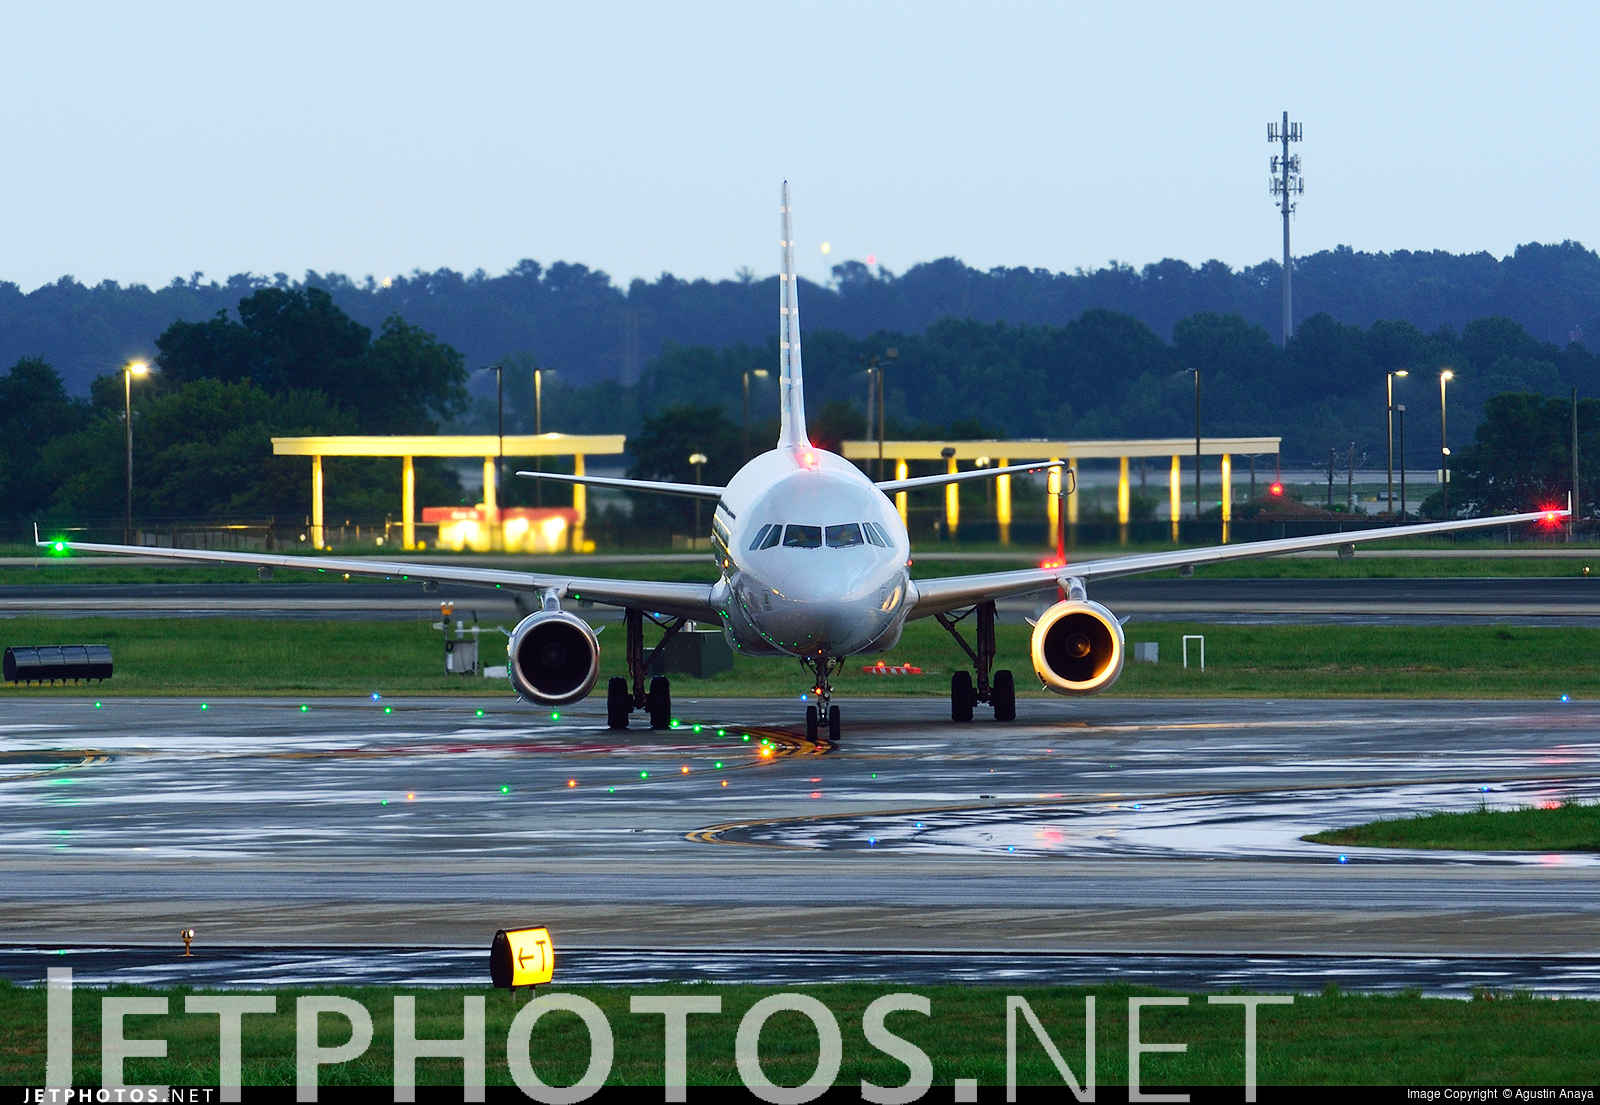 N831aw Airbus A319 132 American Airlines Agustin